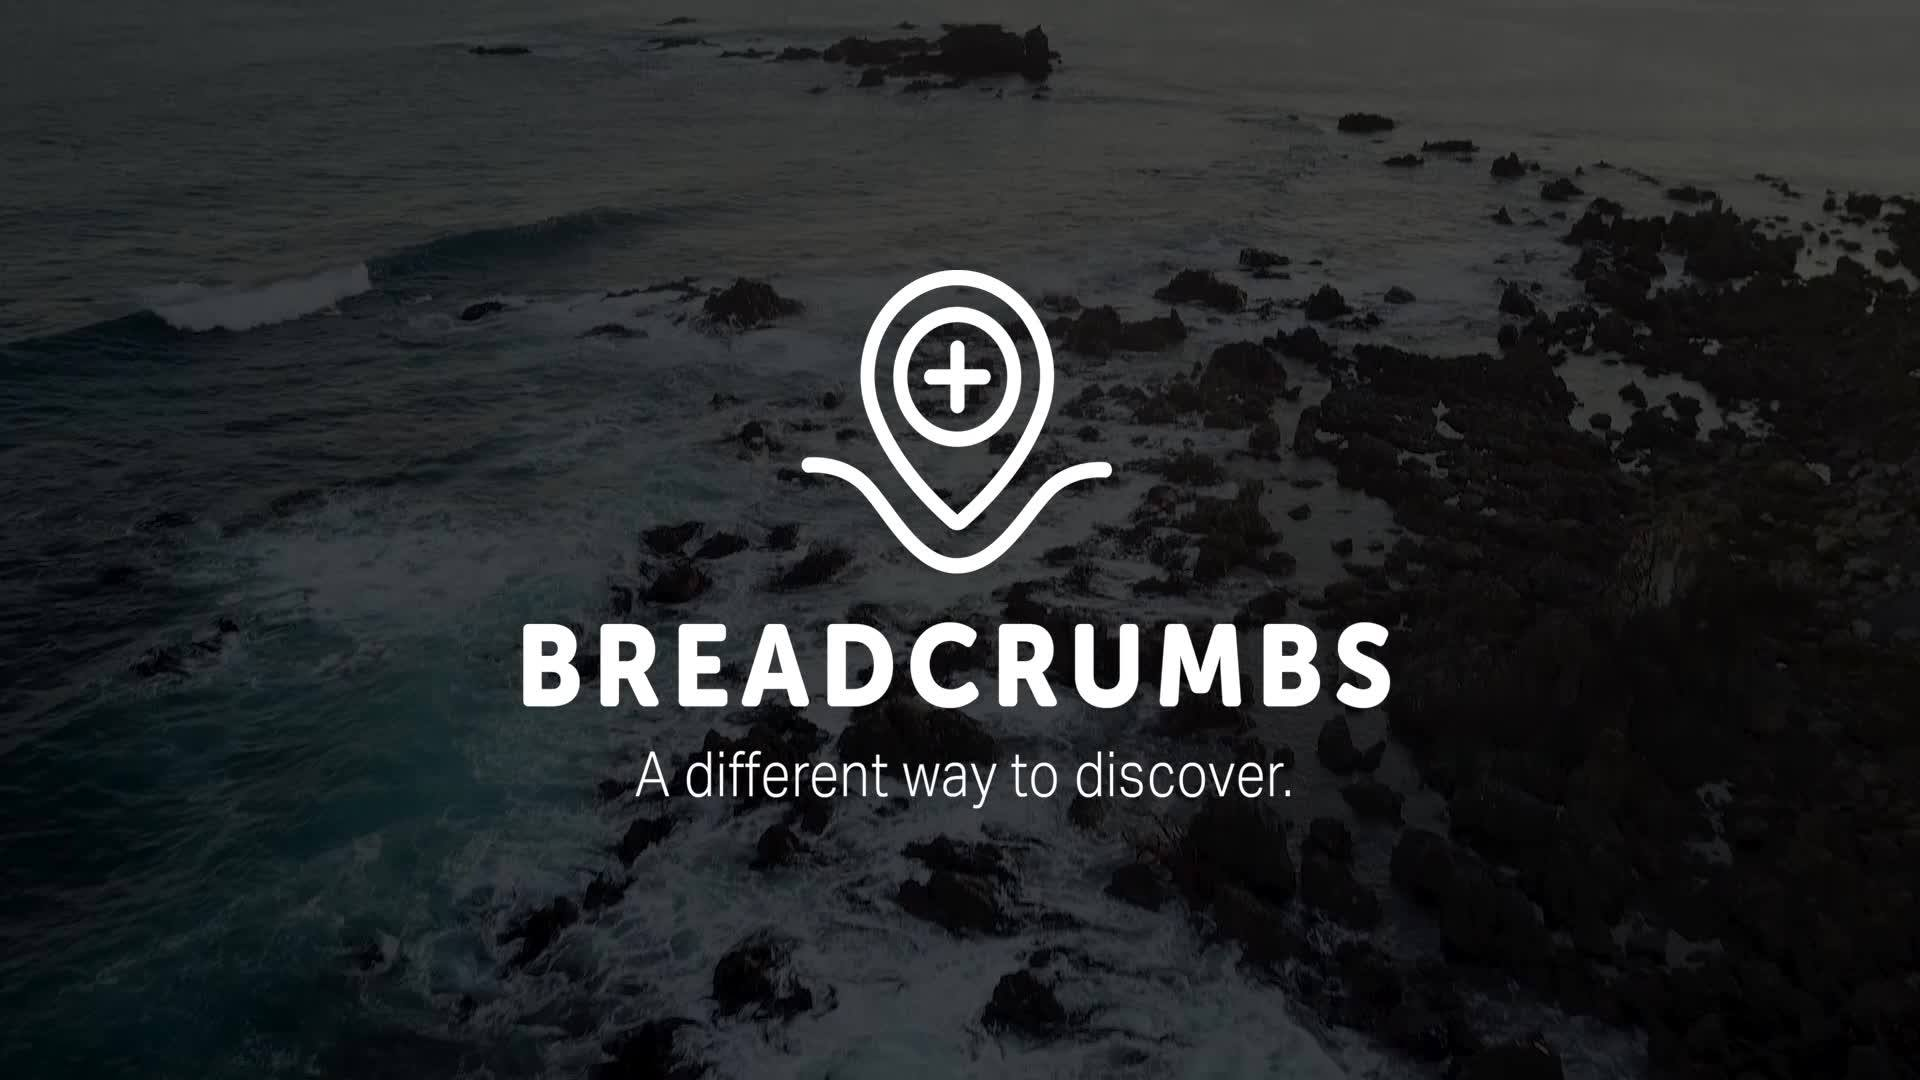 """Breadcrumbs   """"DigitalEQ was recommended to us following a growing reputation of delivering digital results. As an early stage start-up, we couldn't have anticipated just how much of an impact Tom and his well executed social marketing campaigns would have had. Breadcrumbs has seen over 300% total growth to our user base in the last 4 months - largely attributable to Tom's digital work. We have also grown our social audiences and encouraged higher levels of in-app engagement on Breadcrumbs. We are excited to continue working with DigitalEQ and will happily recommend their services!""""   Brendan Platt, Co-owner, Breadcrumbs."""